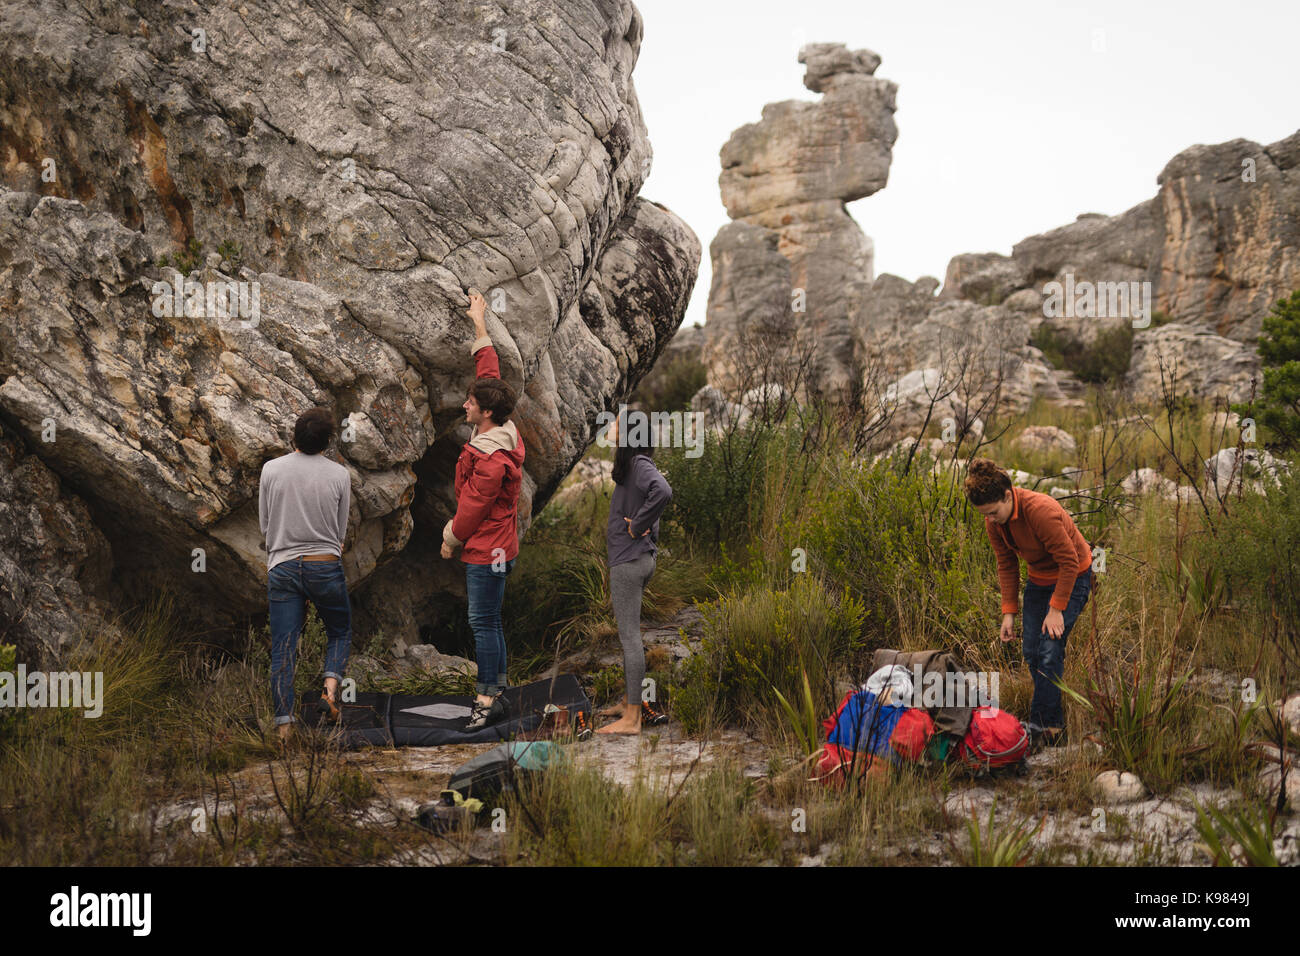 Friends examining cliff during mountaineering - Stock Image